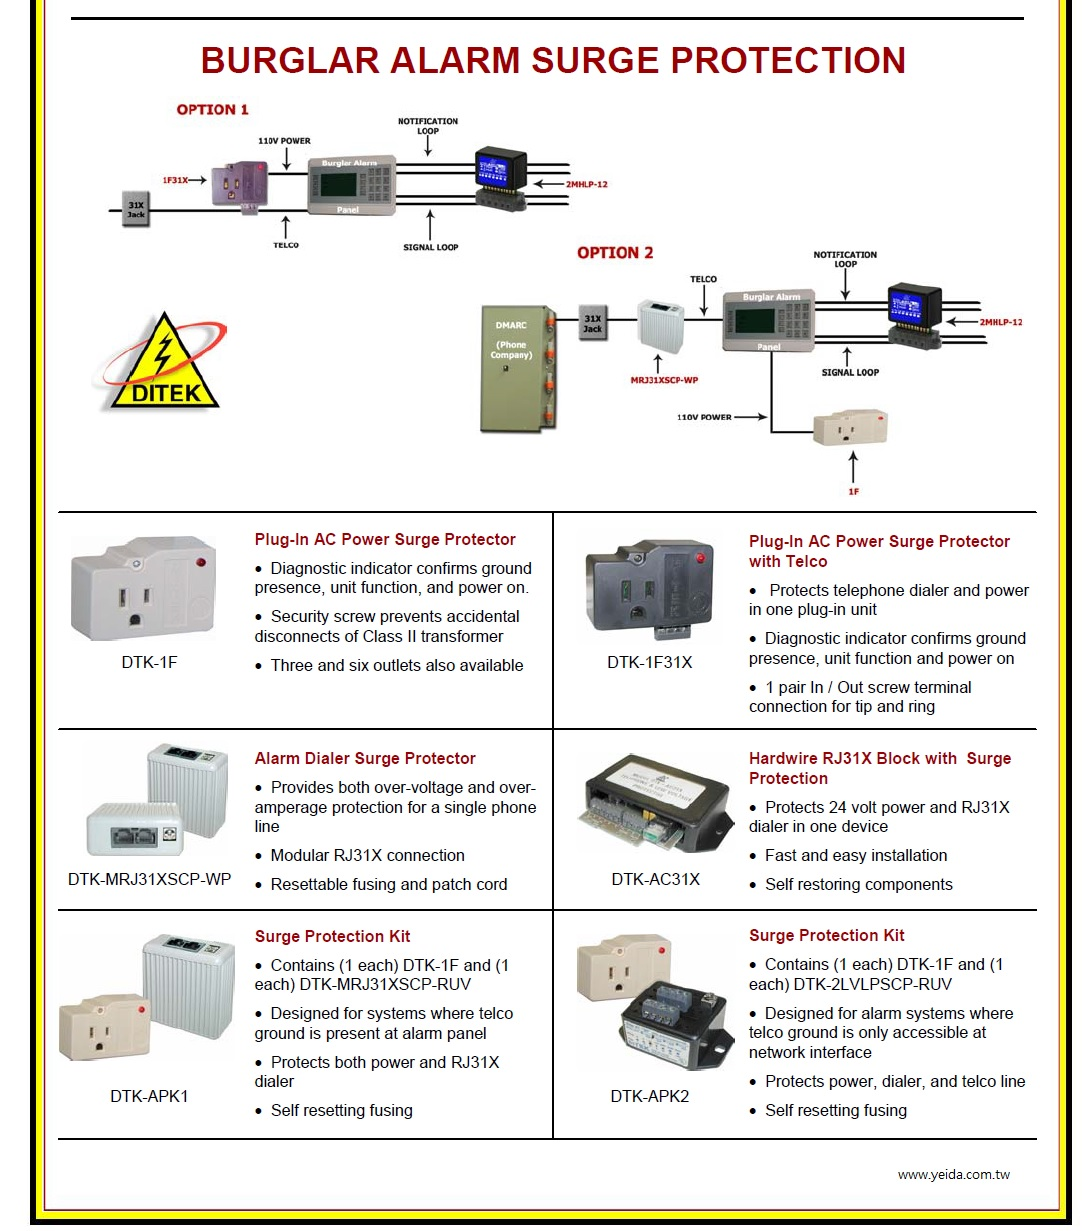 DTK-APK2 (DTK-1F, DTK-2LVLPSCP-RUV) alarm systems Surge Protection Kit, Protects power, dialer, and telco line 防盜系統雷擊保護器套件產品圖